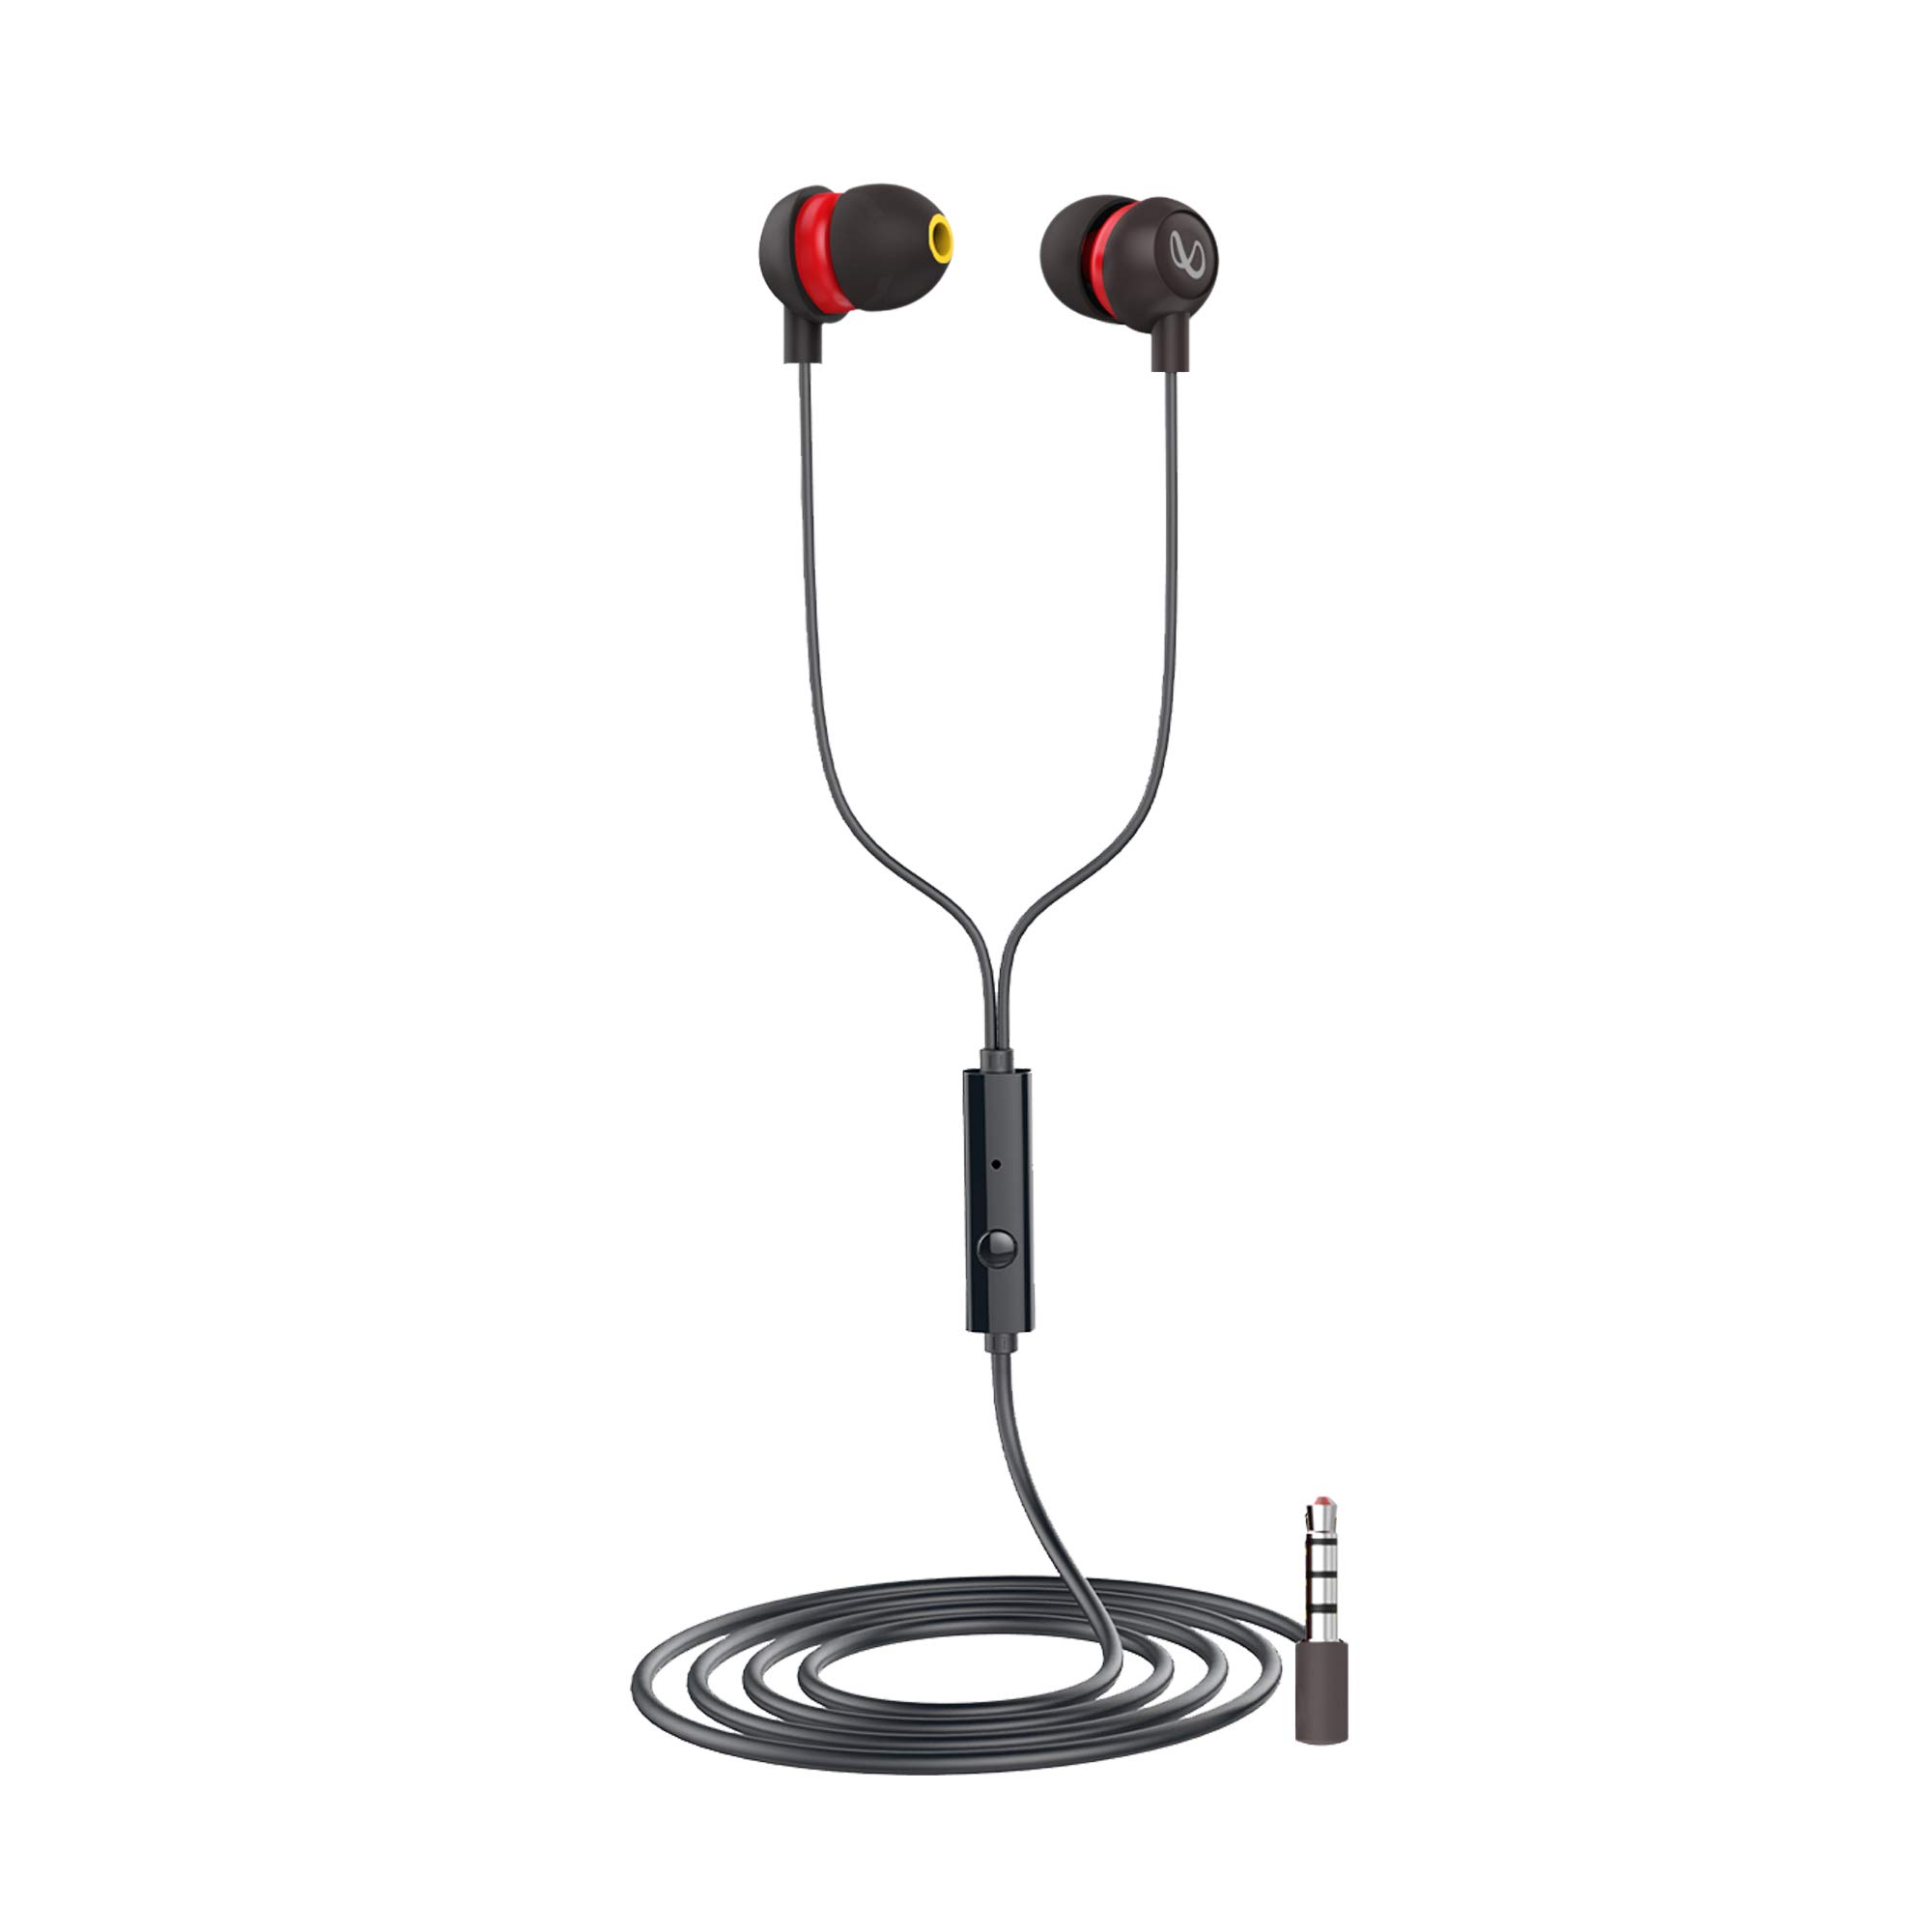 Infinity (JBL) Zip 20 In-Ear Deep Base Headphone Mic with Black and Red